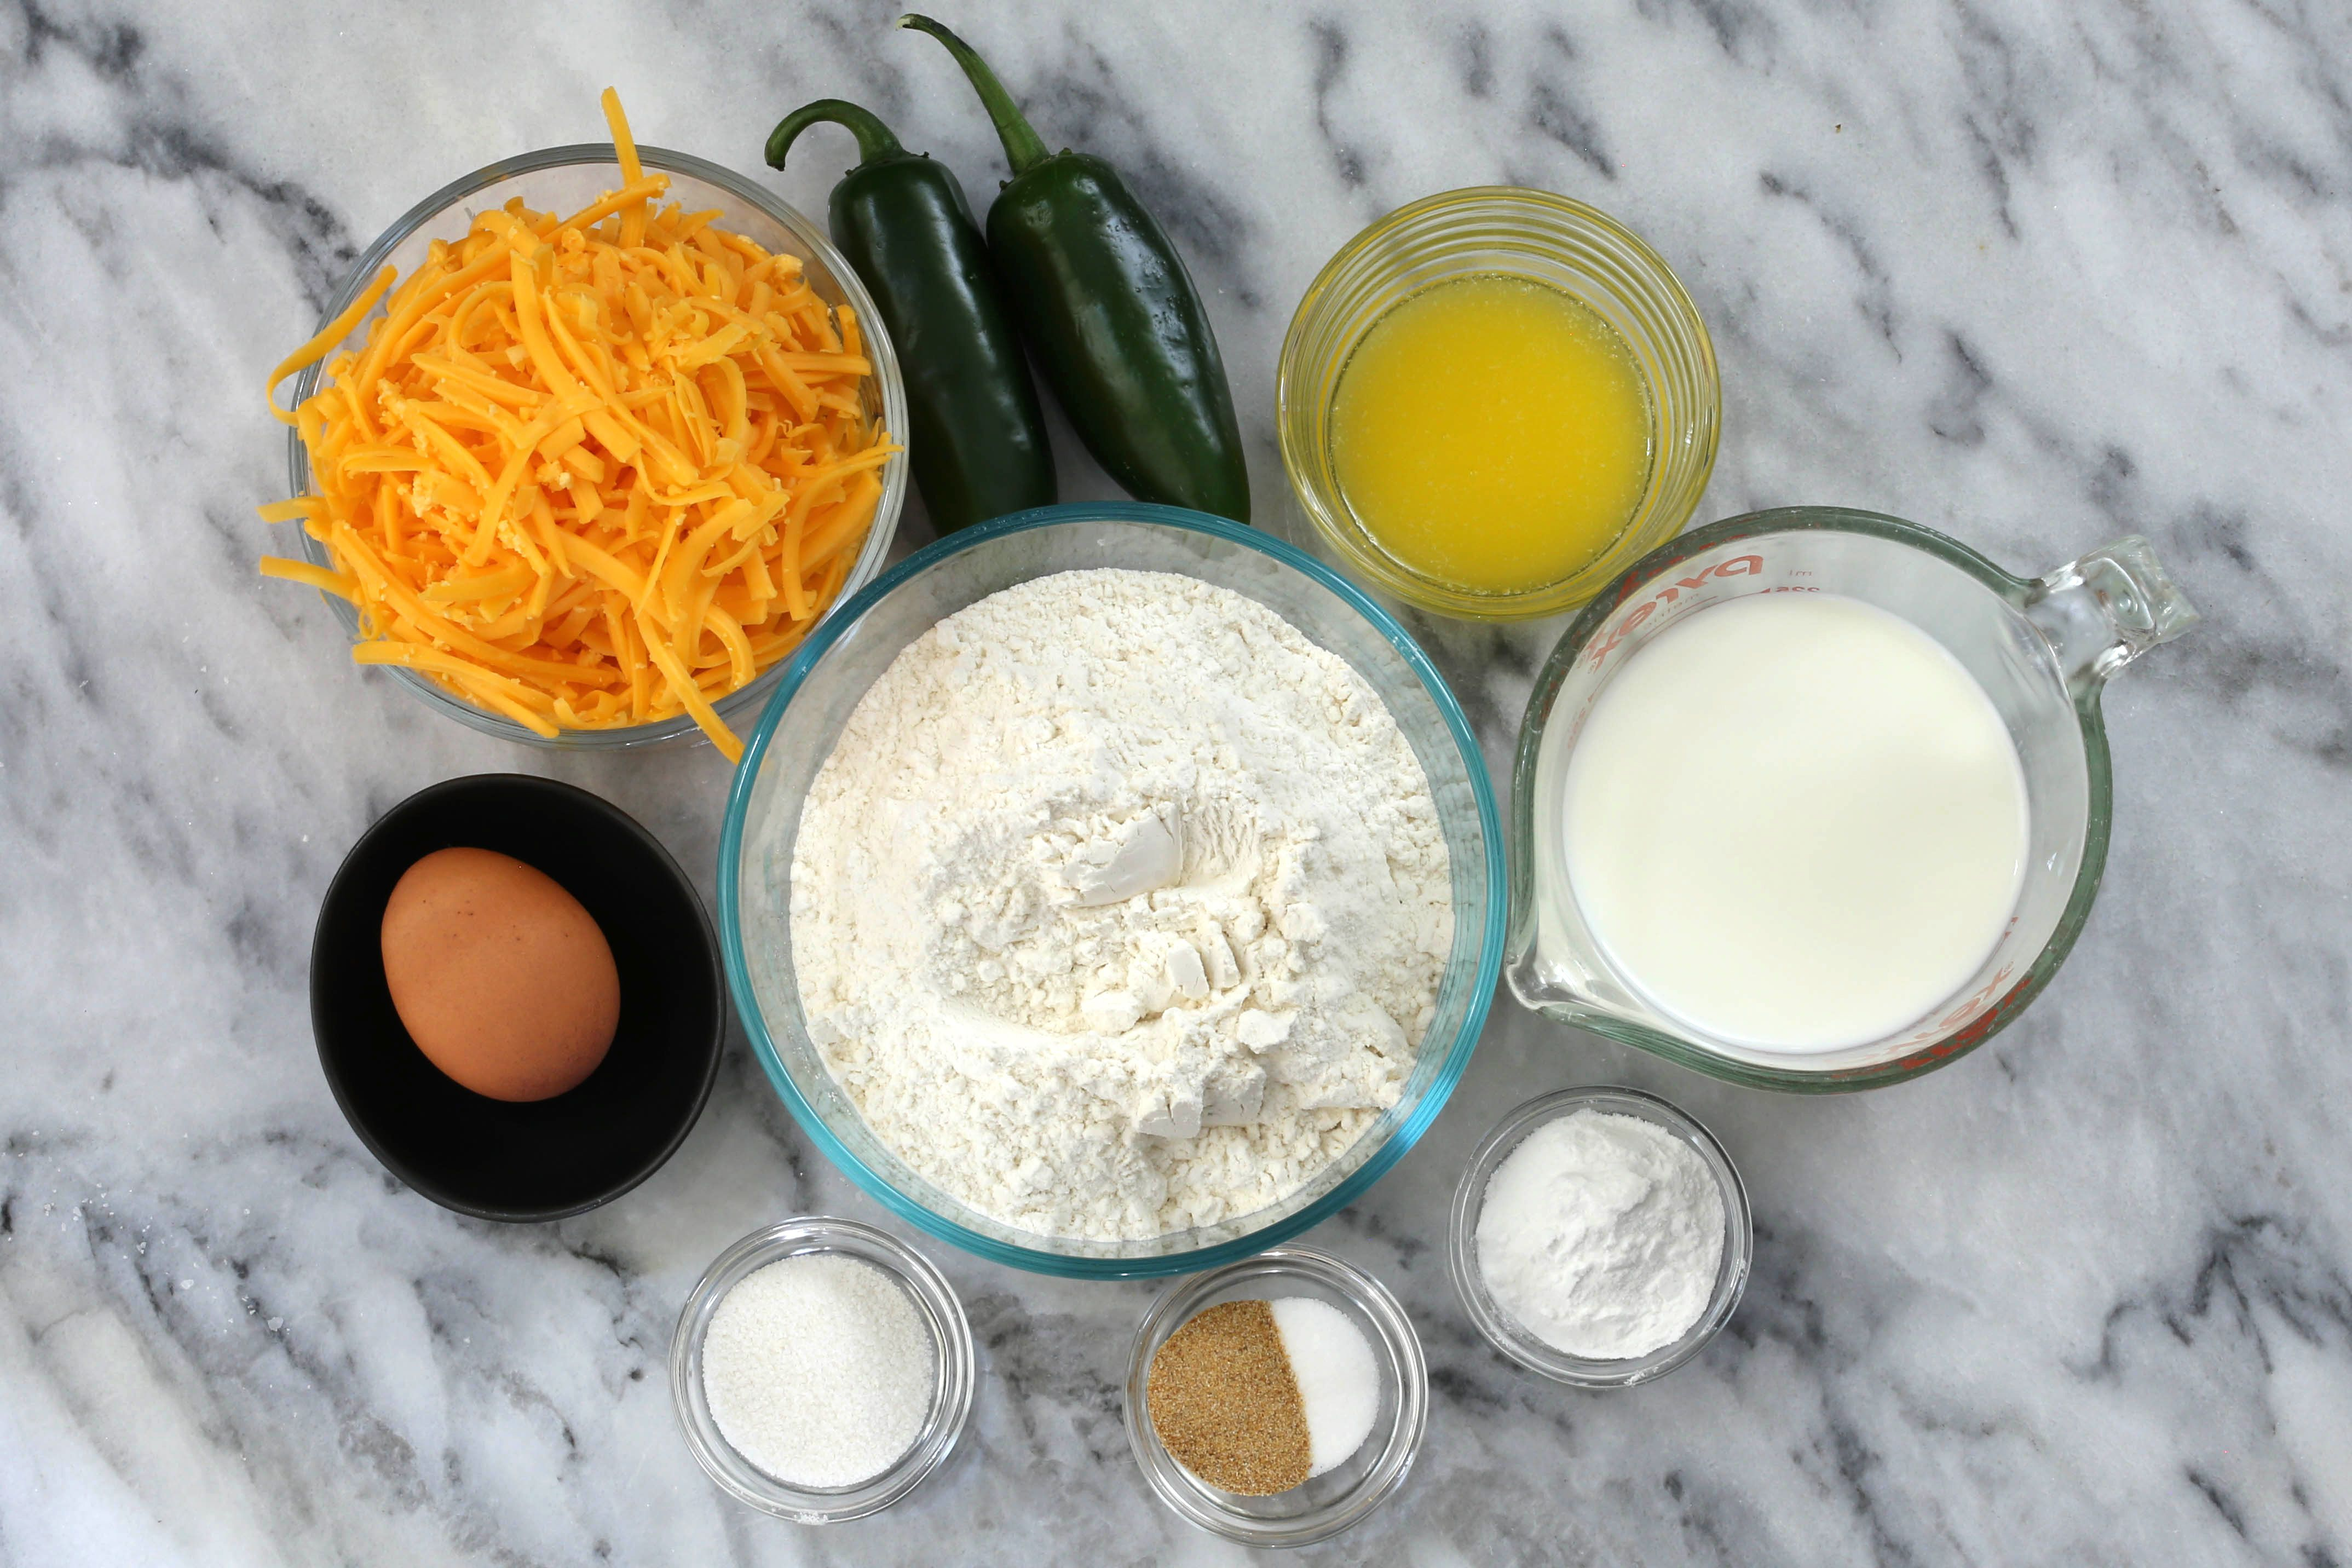 Ingredients for jalapeno cheddar quick bread.